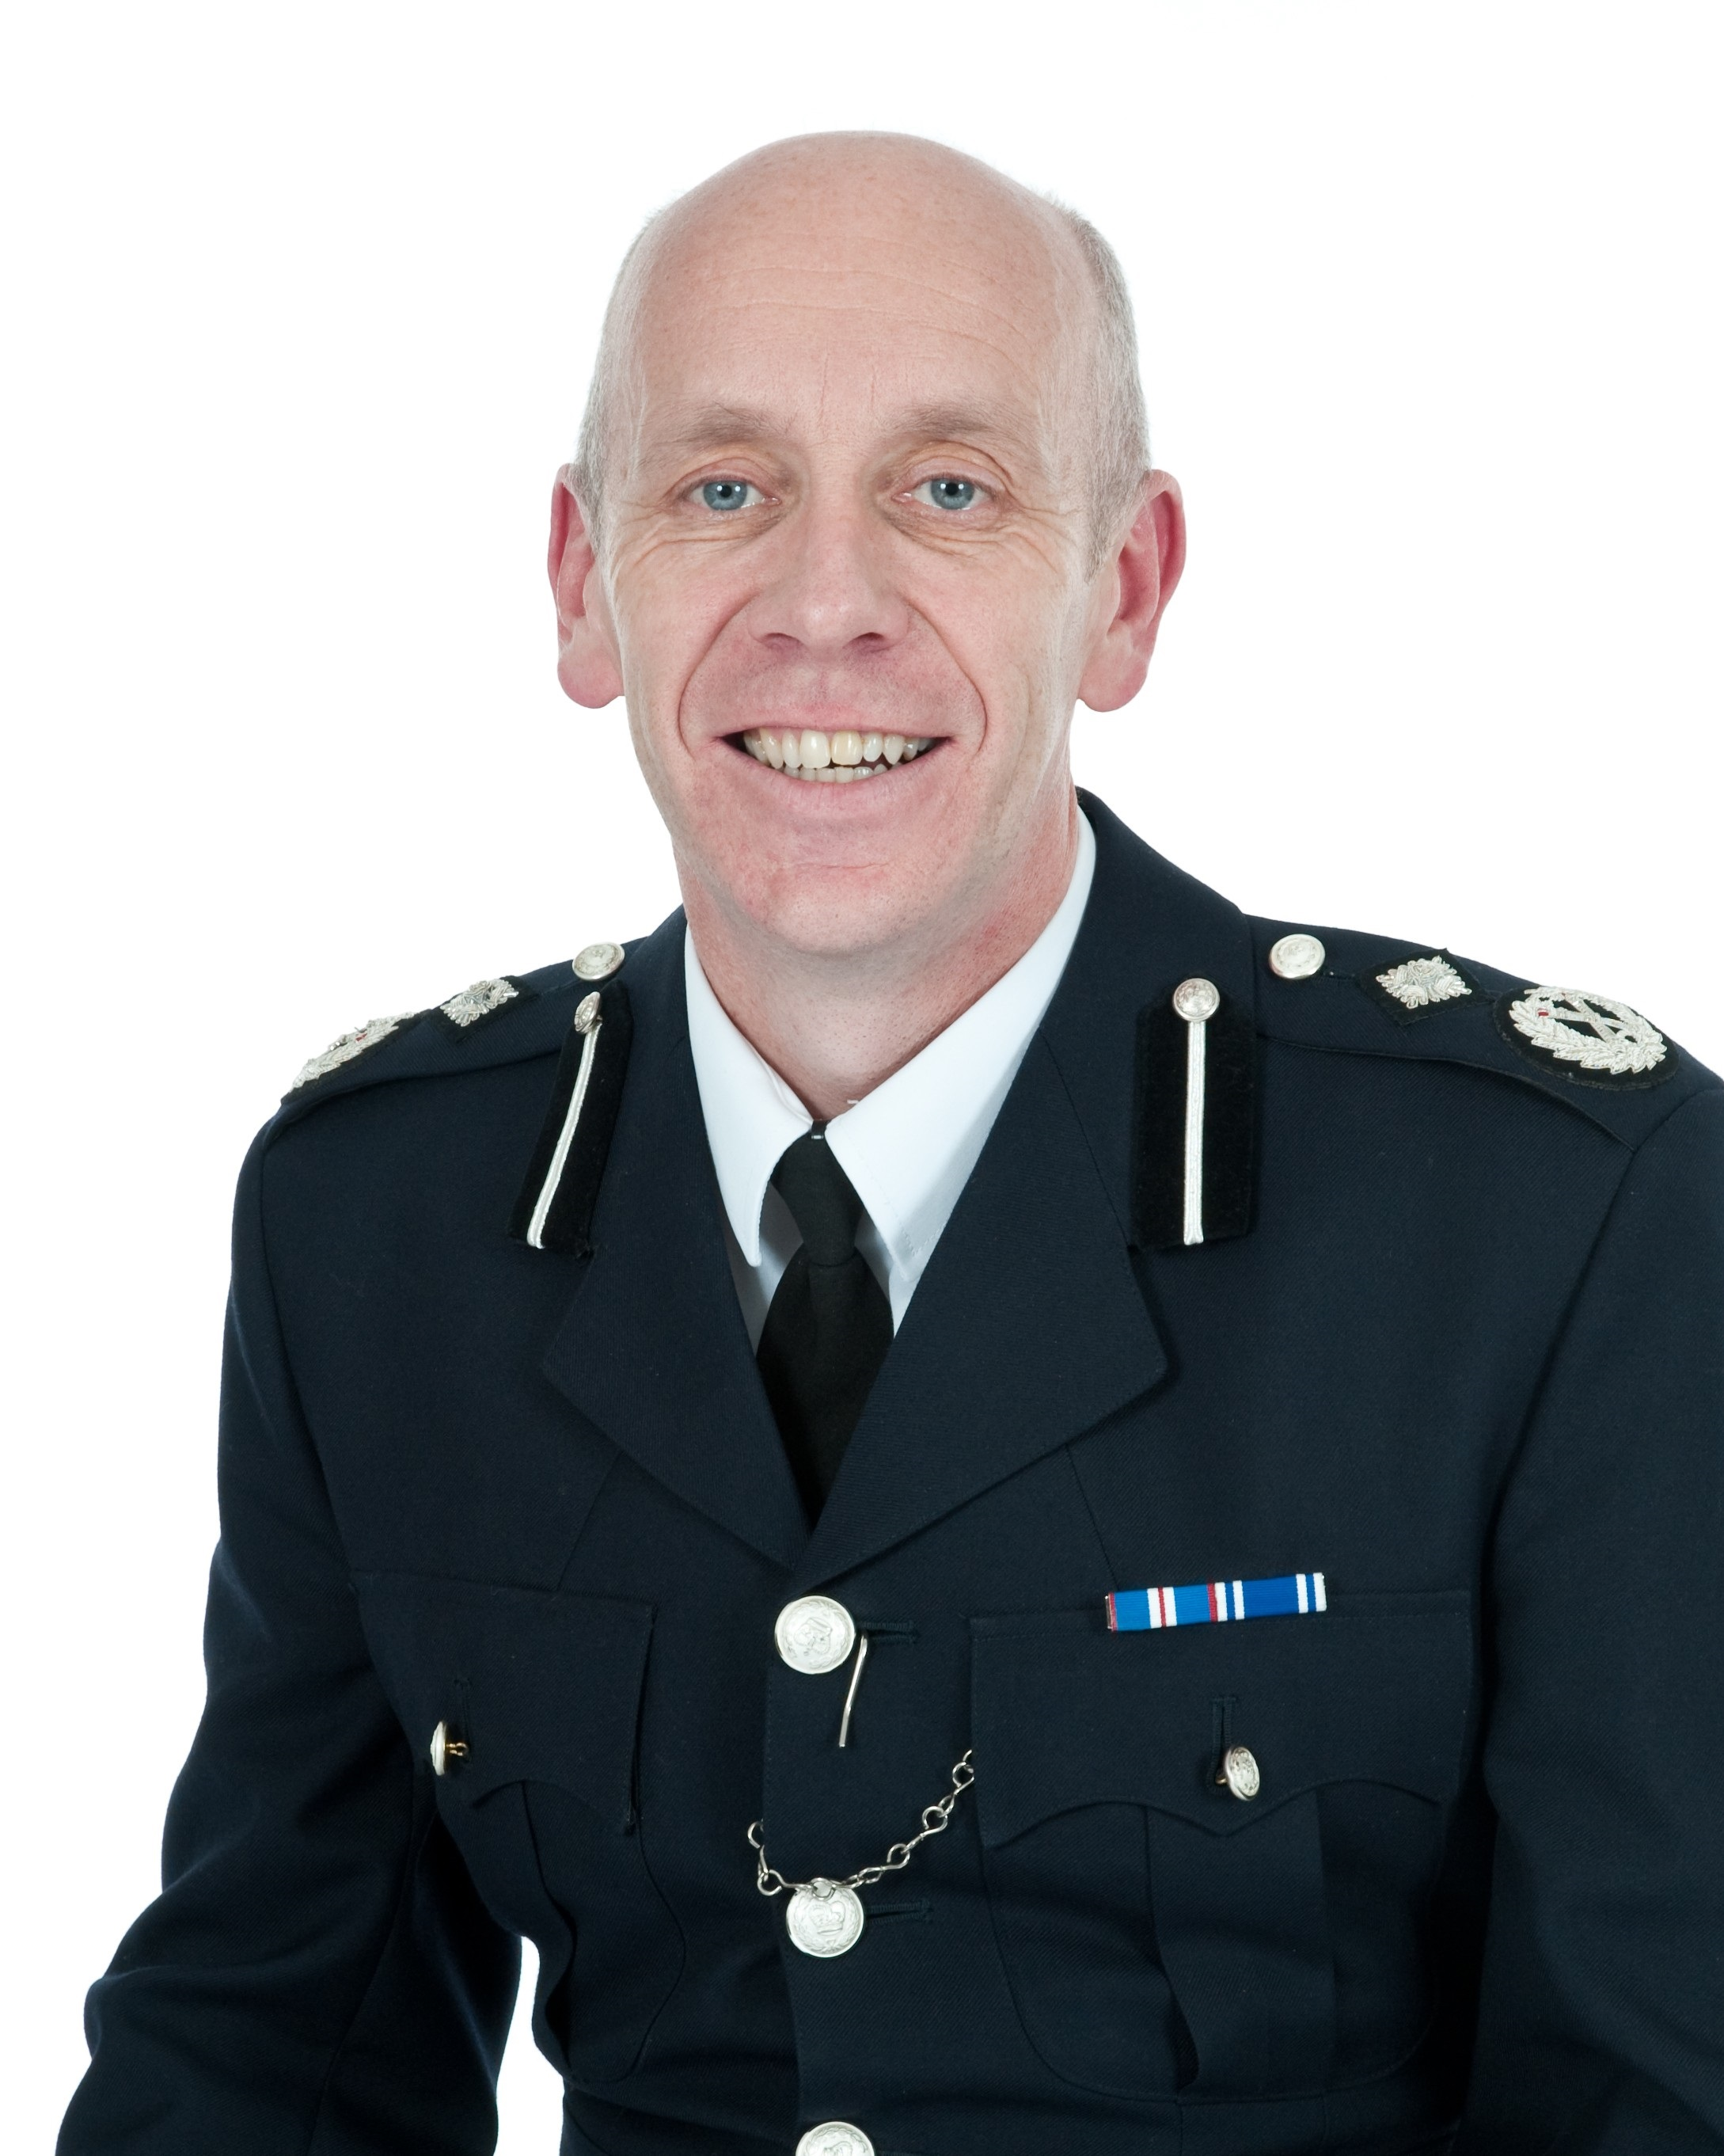 Deputy Chief Constable Derek Benson